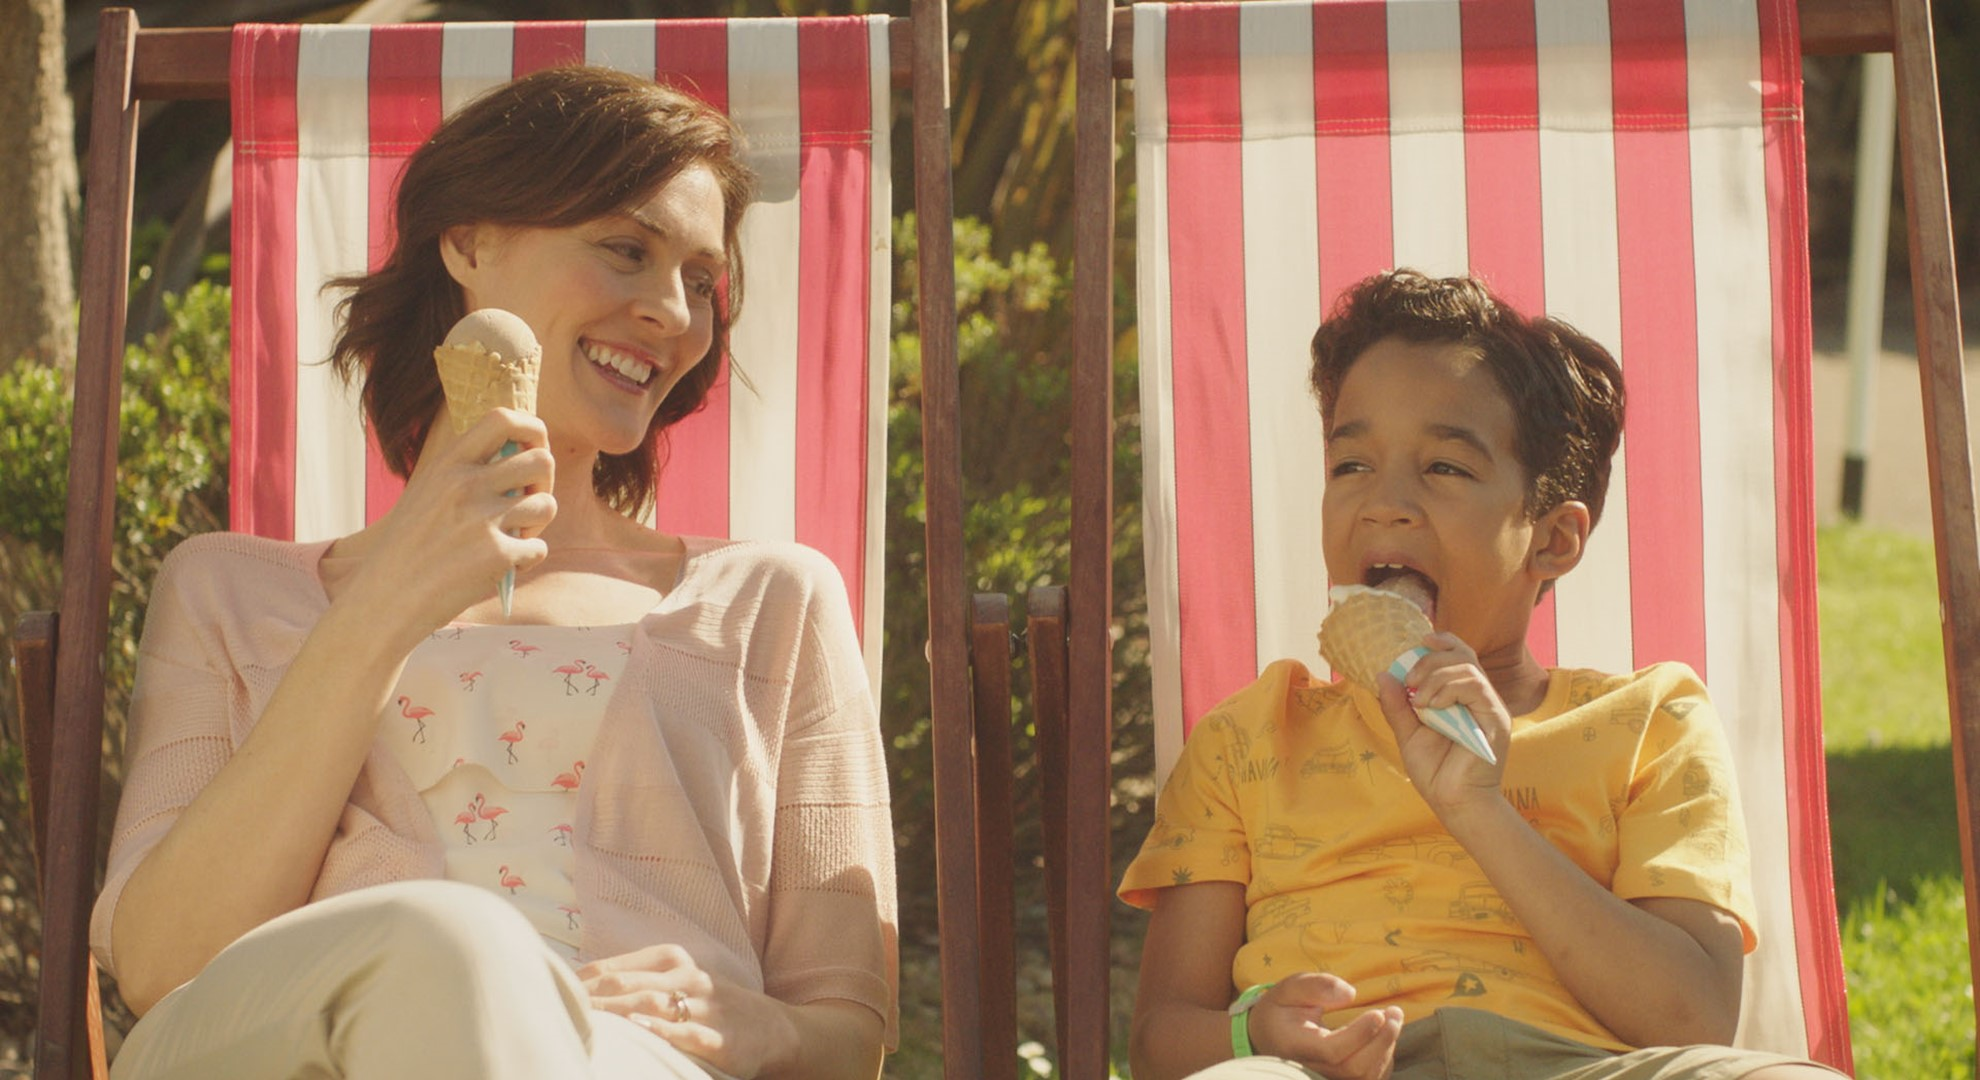 Butlins launches 'Summer Breaks' campaign